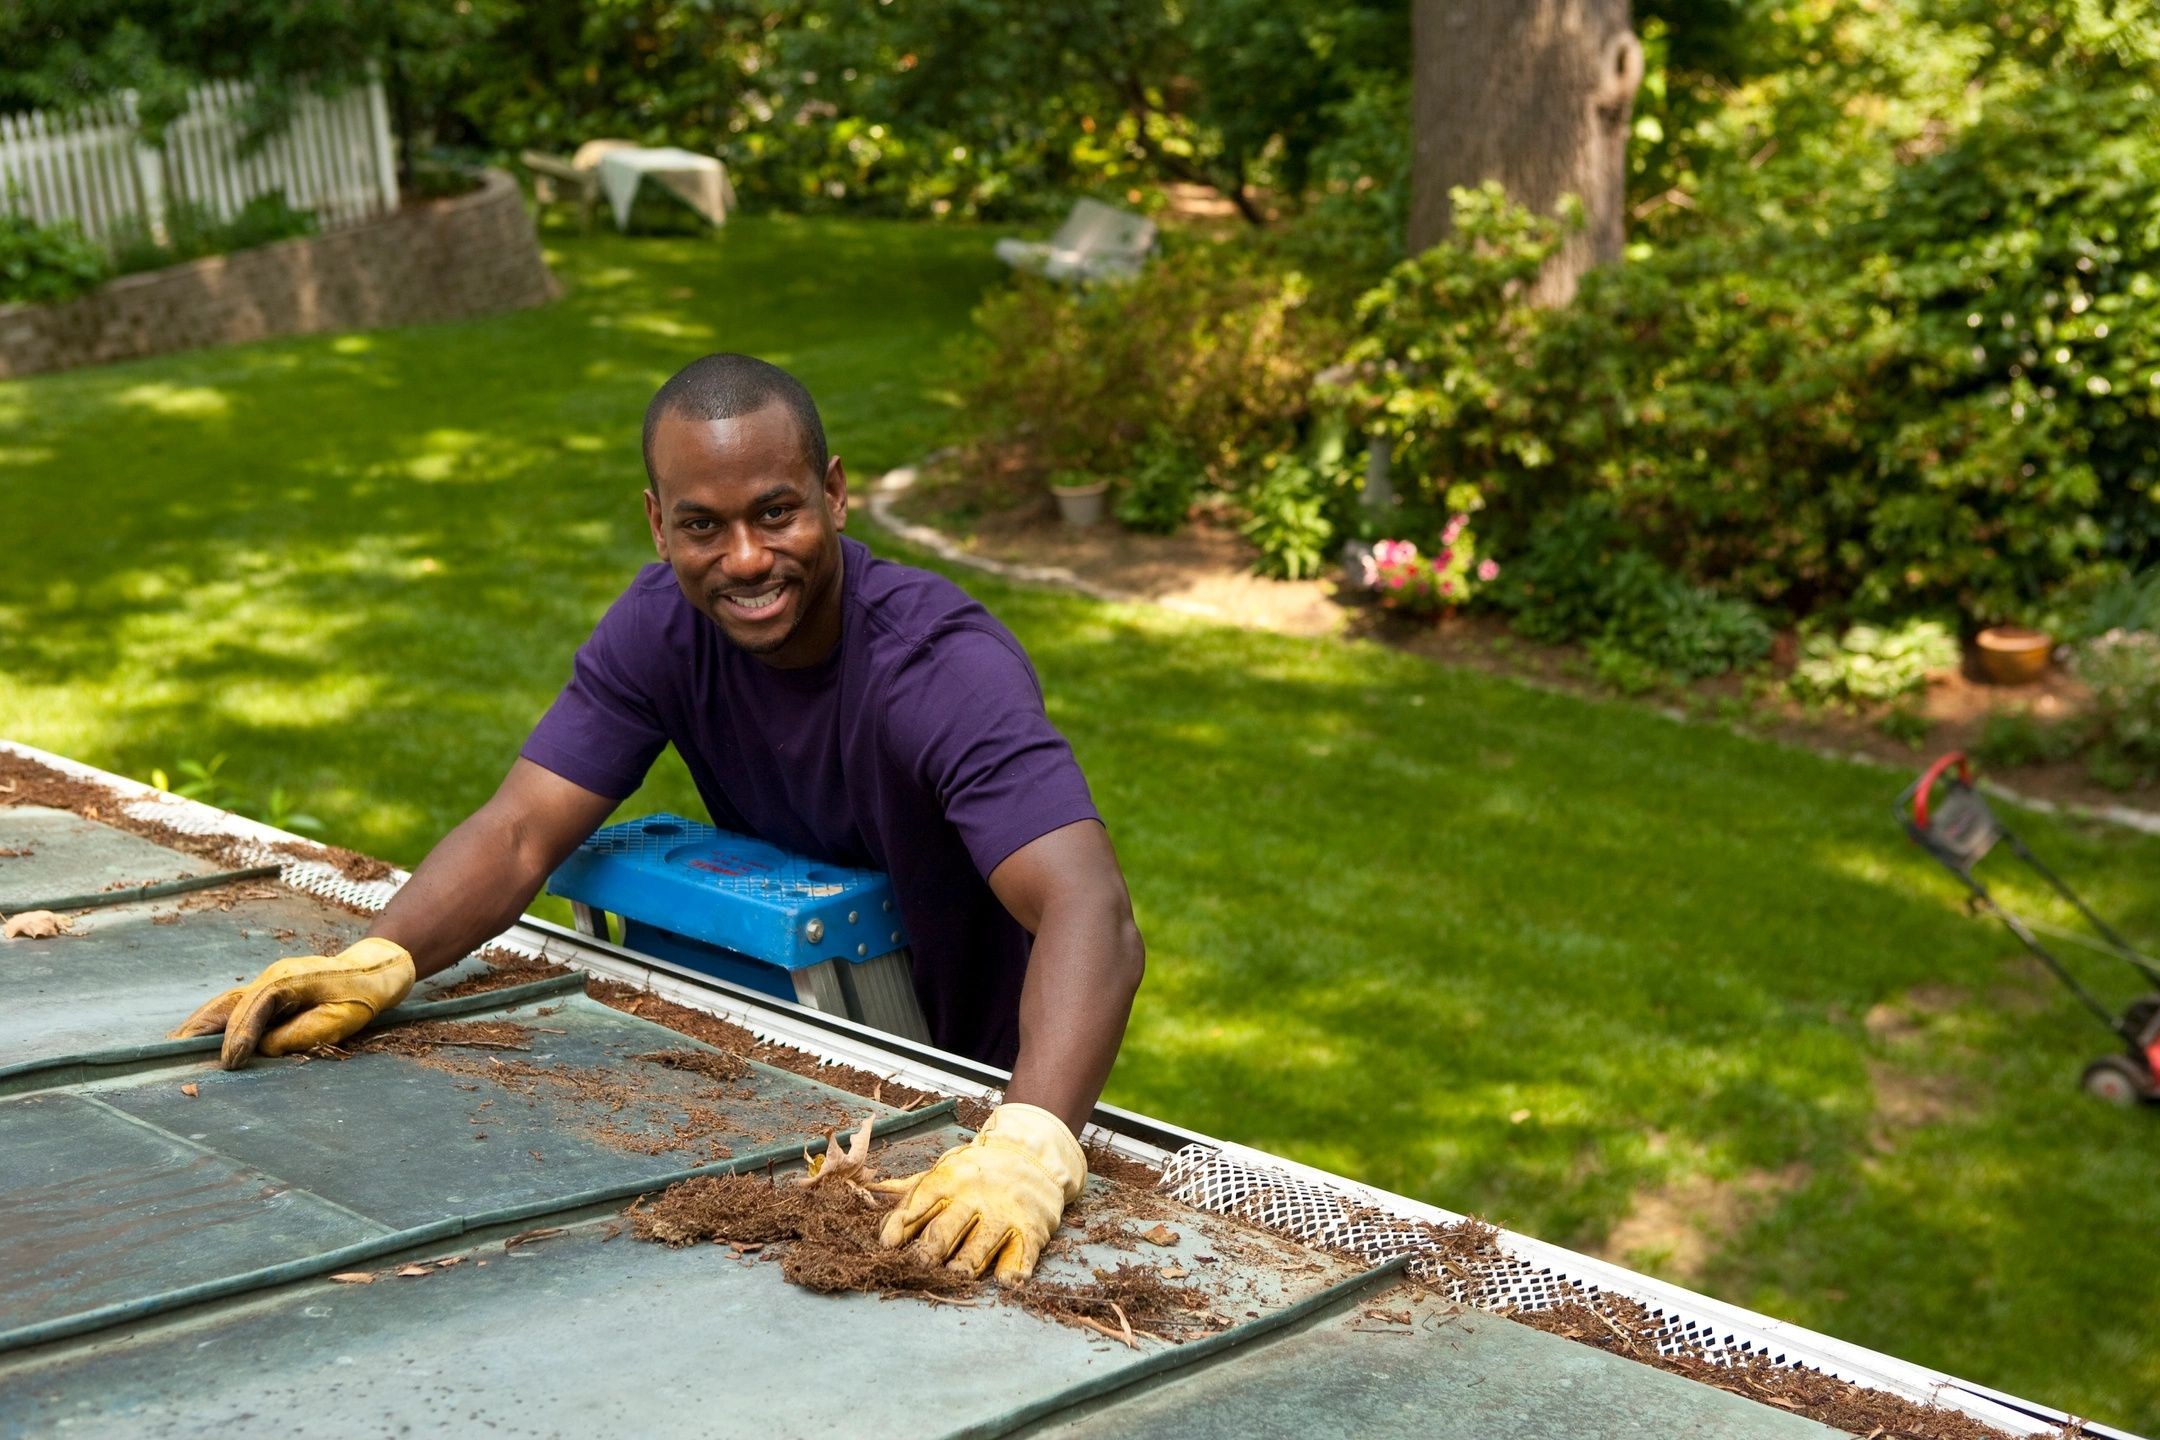 clean rain gutters are a top priority in the summer months